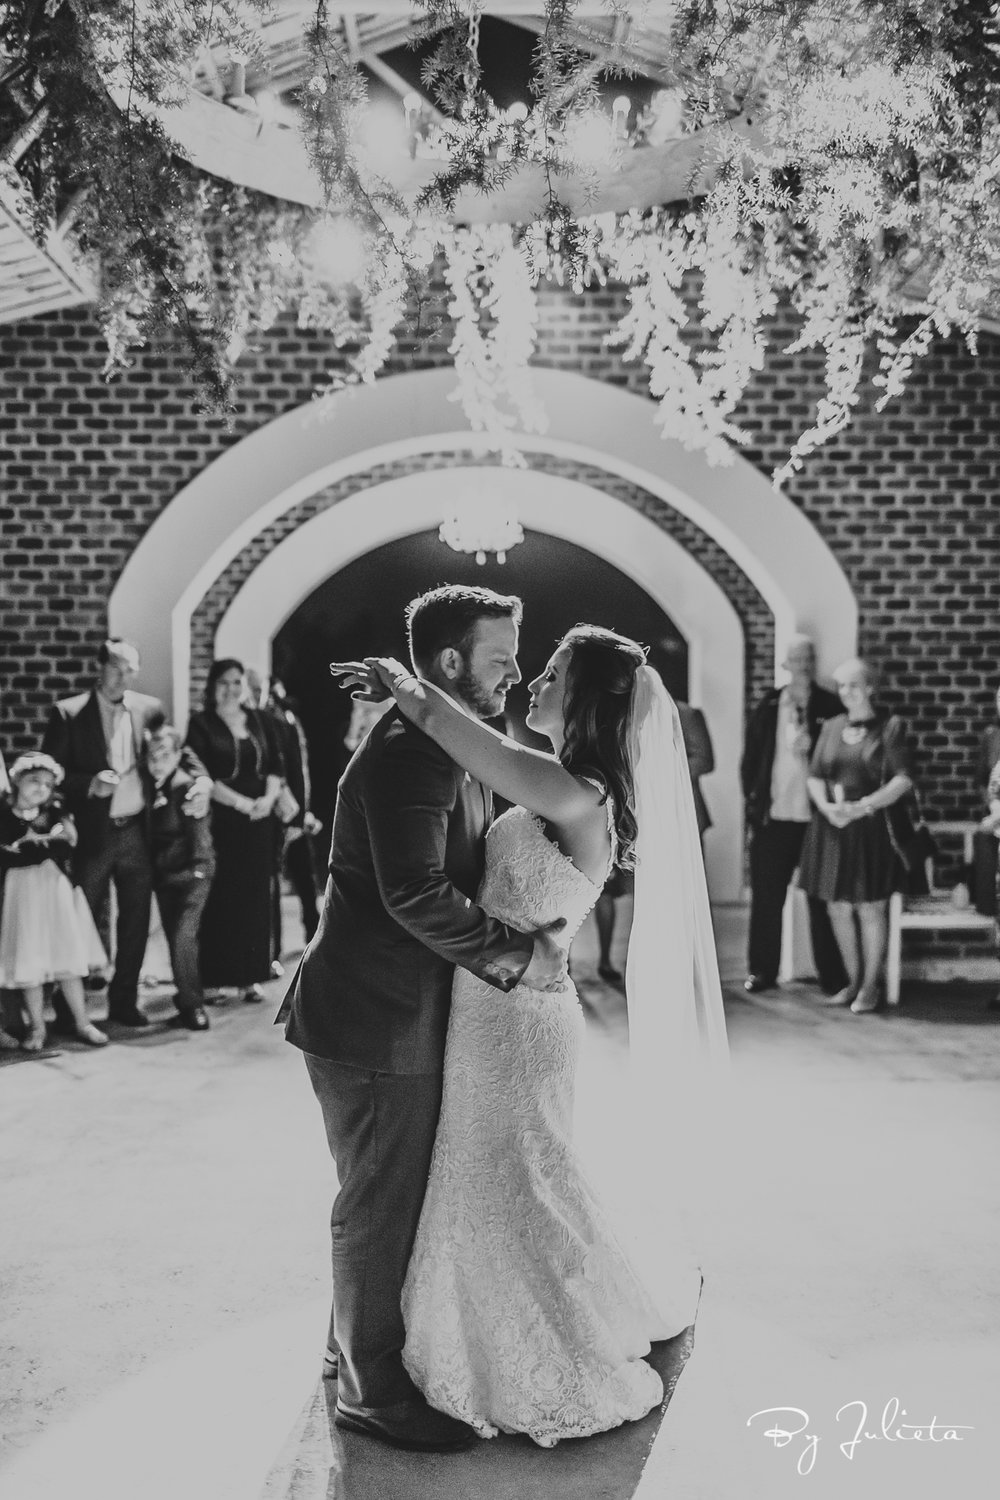 01.21.17 Cabo Wedding. Floras Farm. K+A. Julieta Amezcua Photography. (494 of 637).jpg